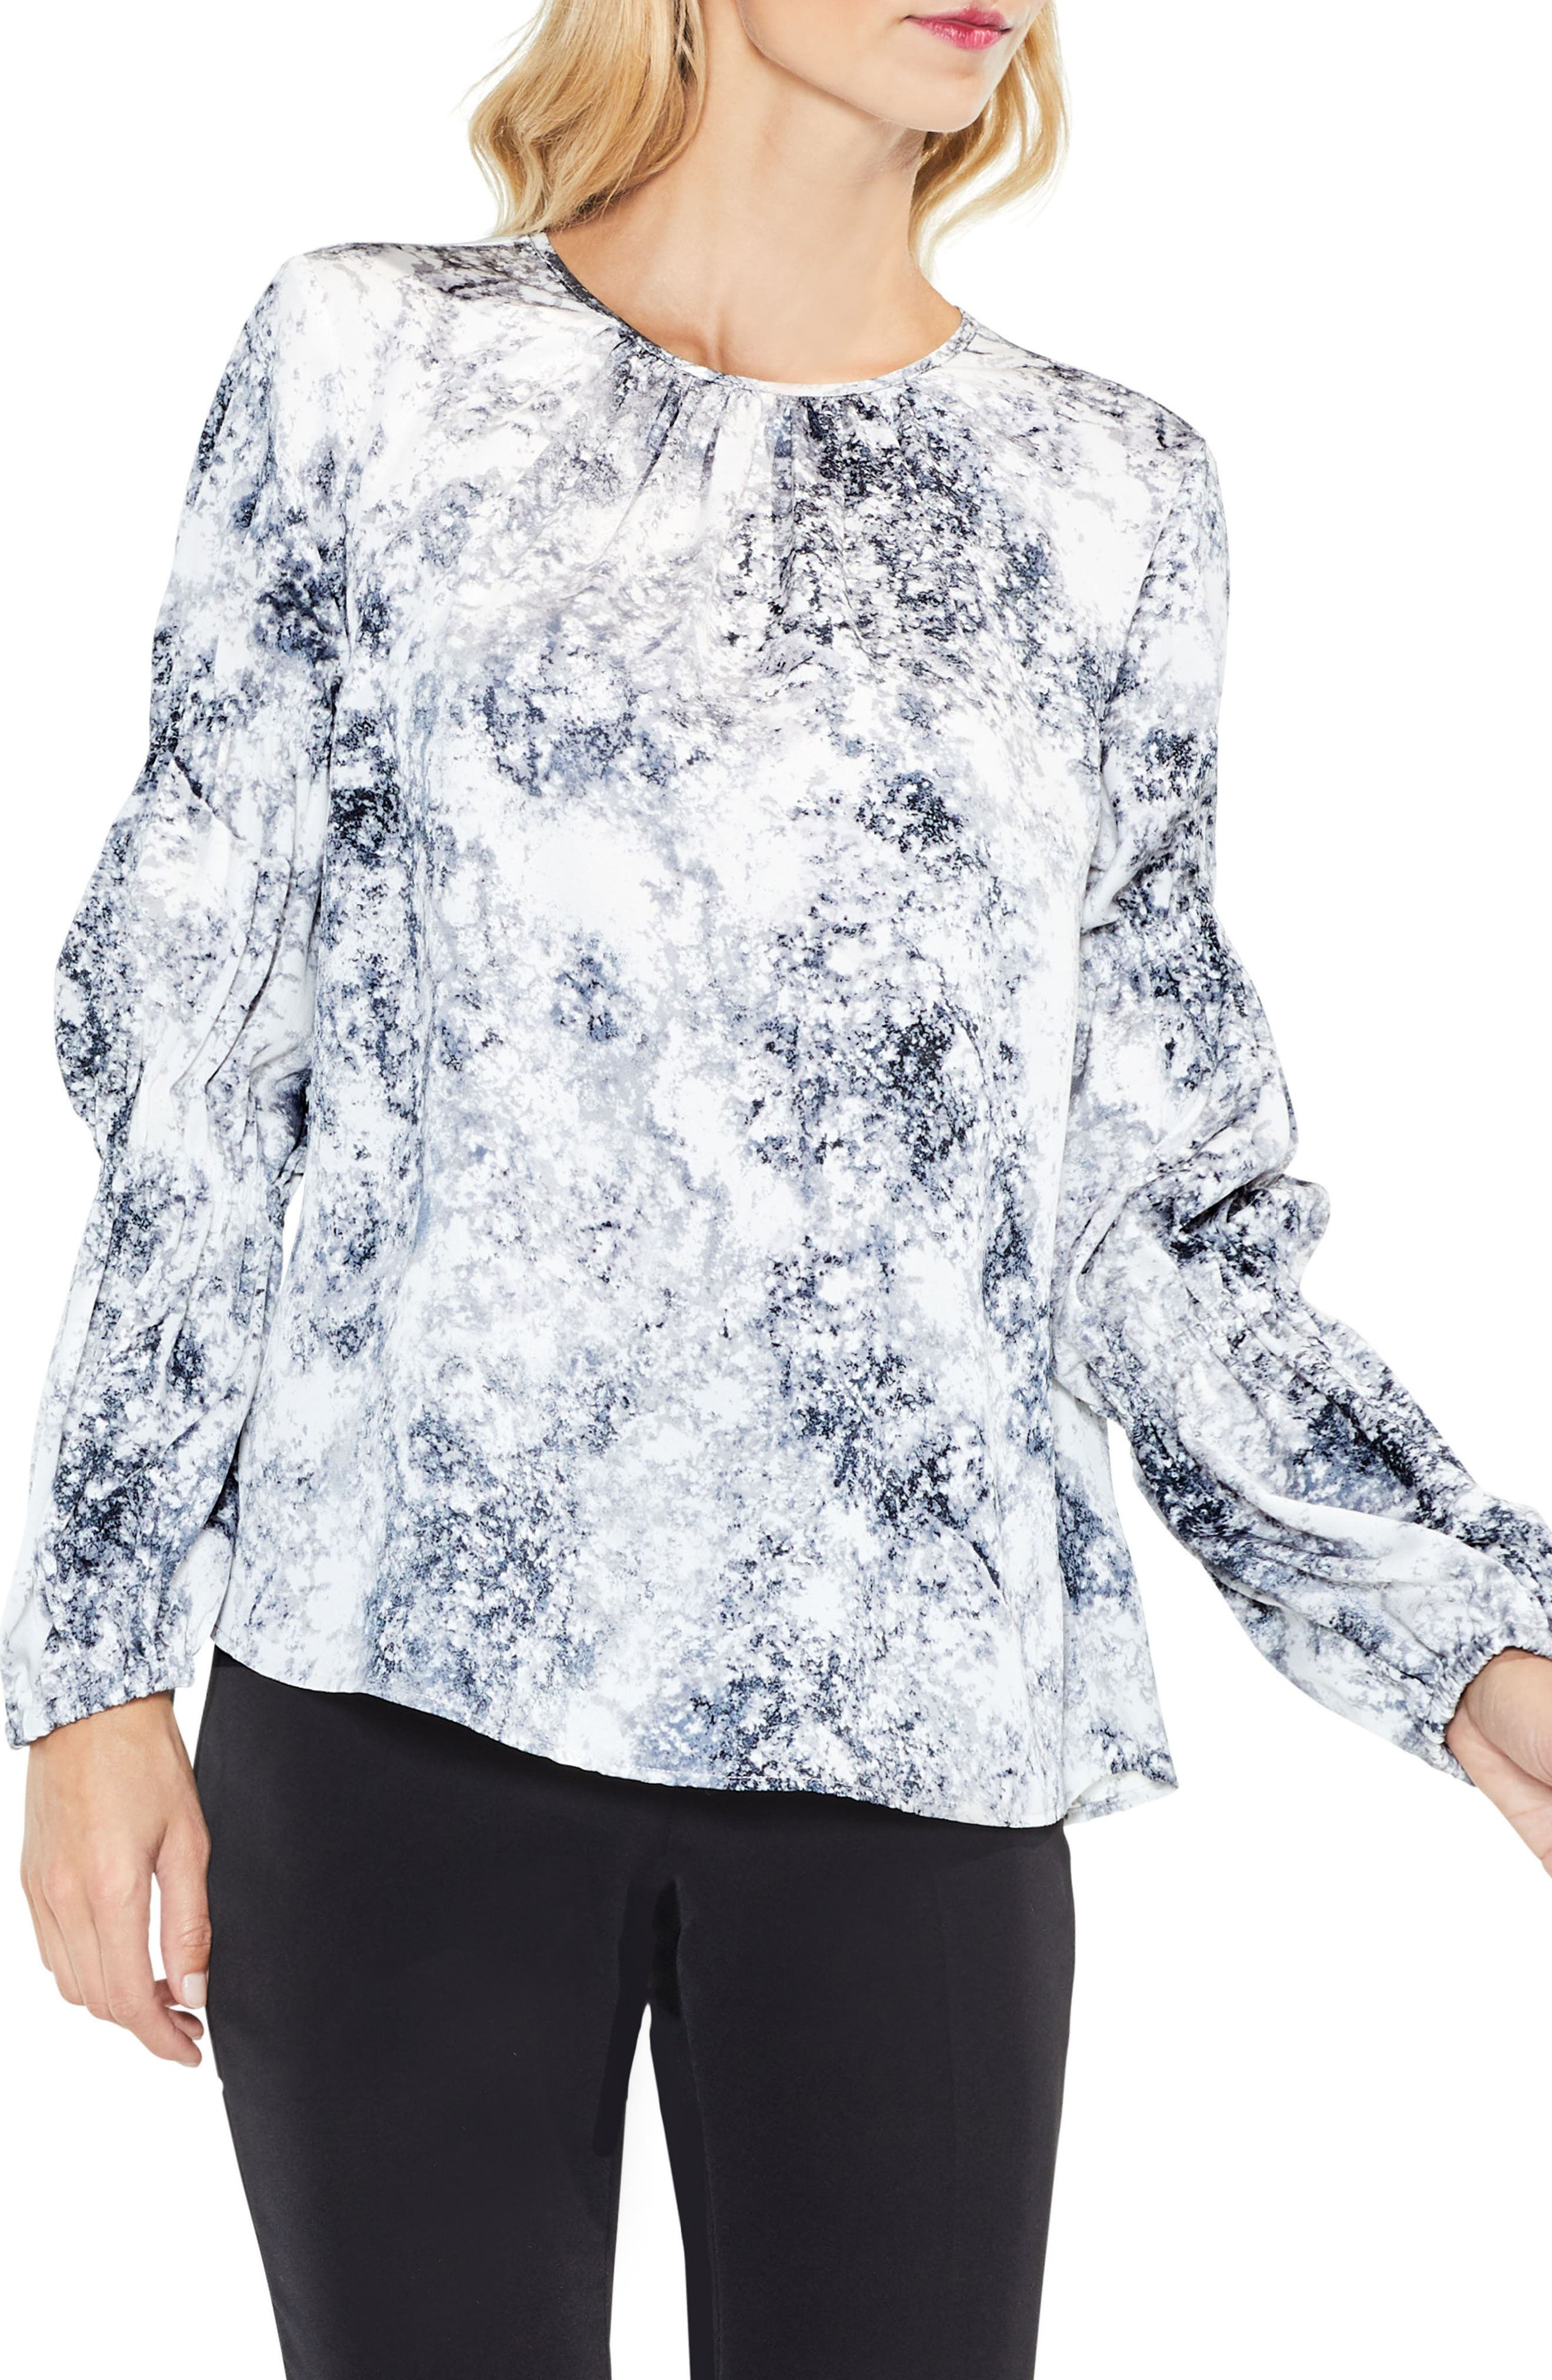 Alternate Image 1 Selected - Vince Camuto Speckled Cinch Sleeve Top